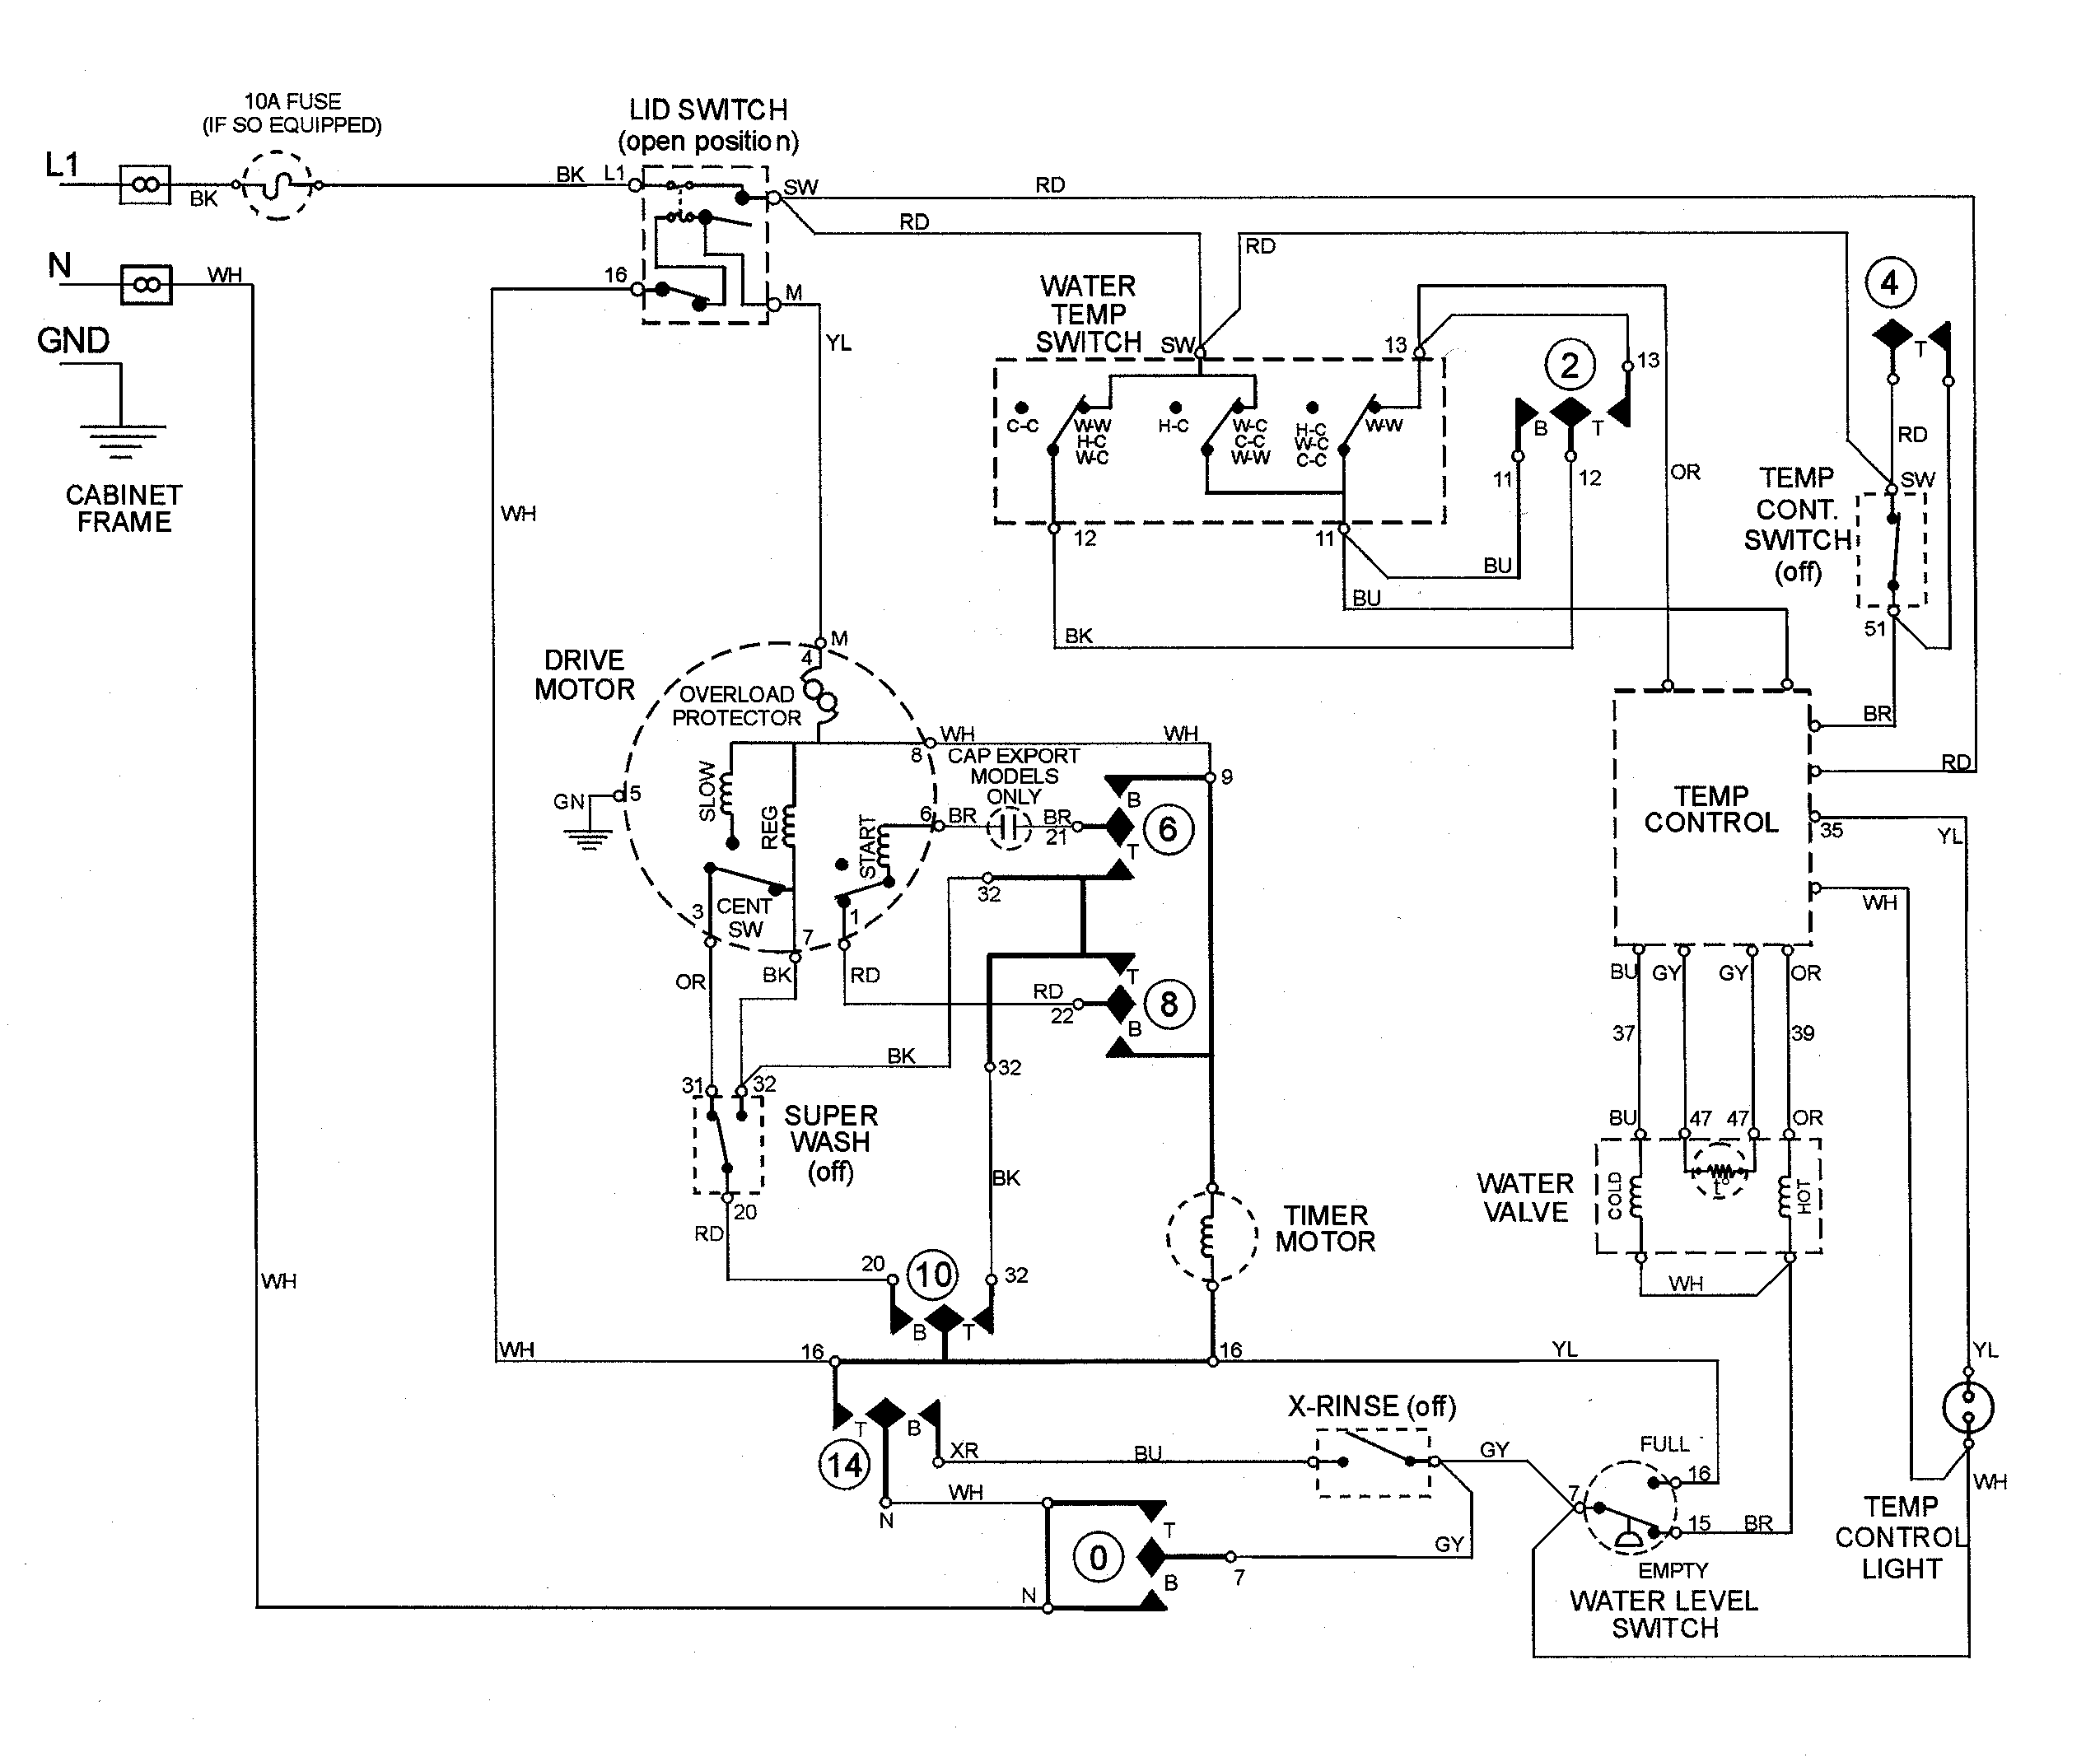 Universal Electric Motor Wiring Diagram Cause And Effect Fishbone Ishikawa Ge Washing Machine